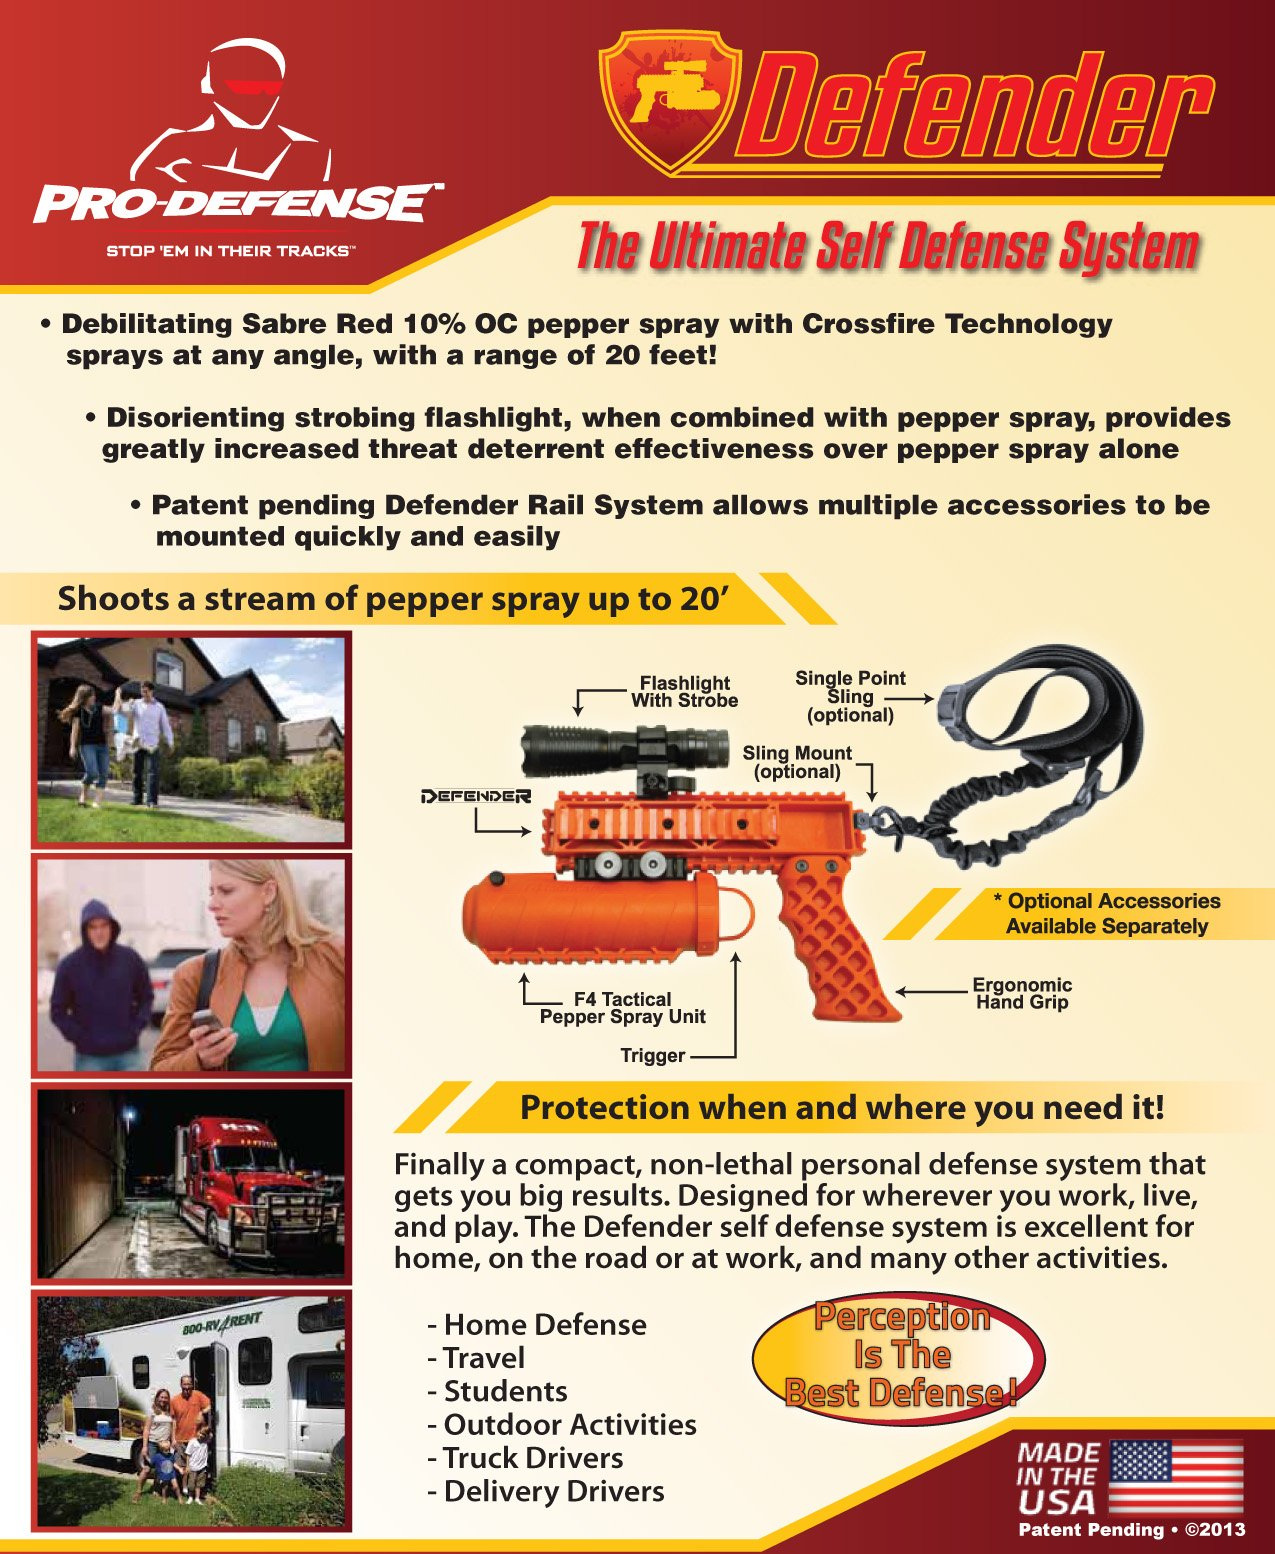 Pro-Defense The Defender Rail Mounted Pepper Spray System, Orange Color, Left/Right